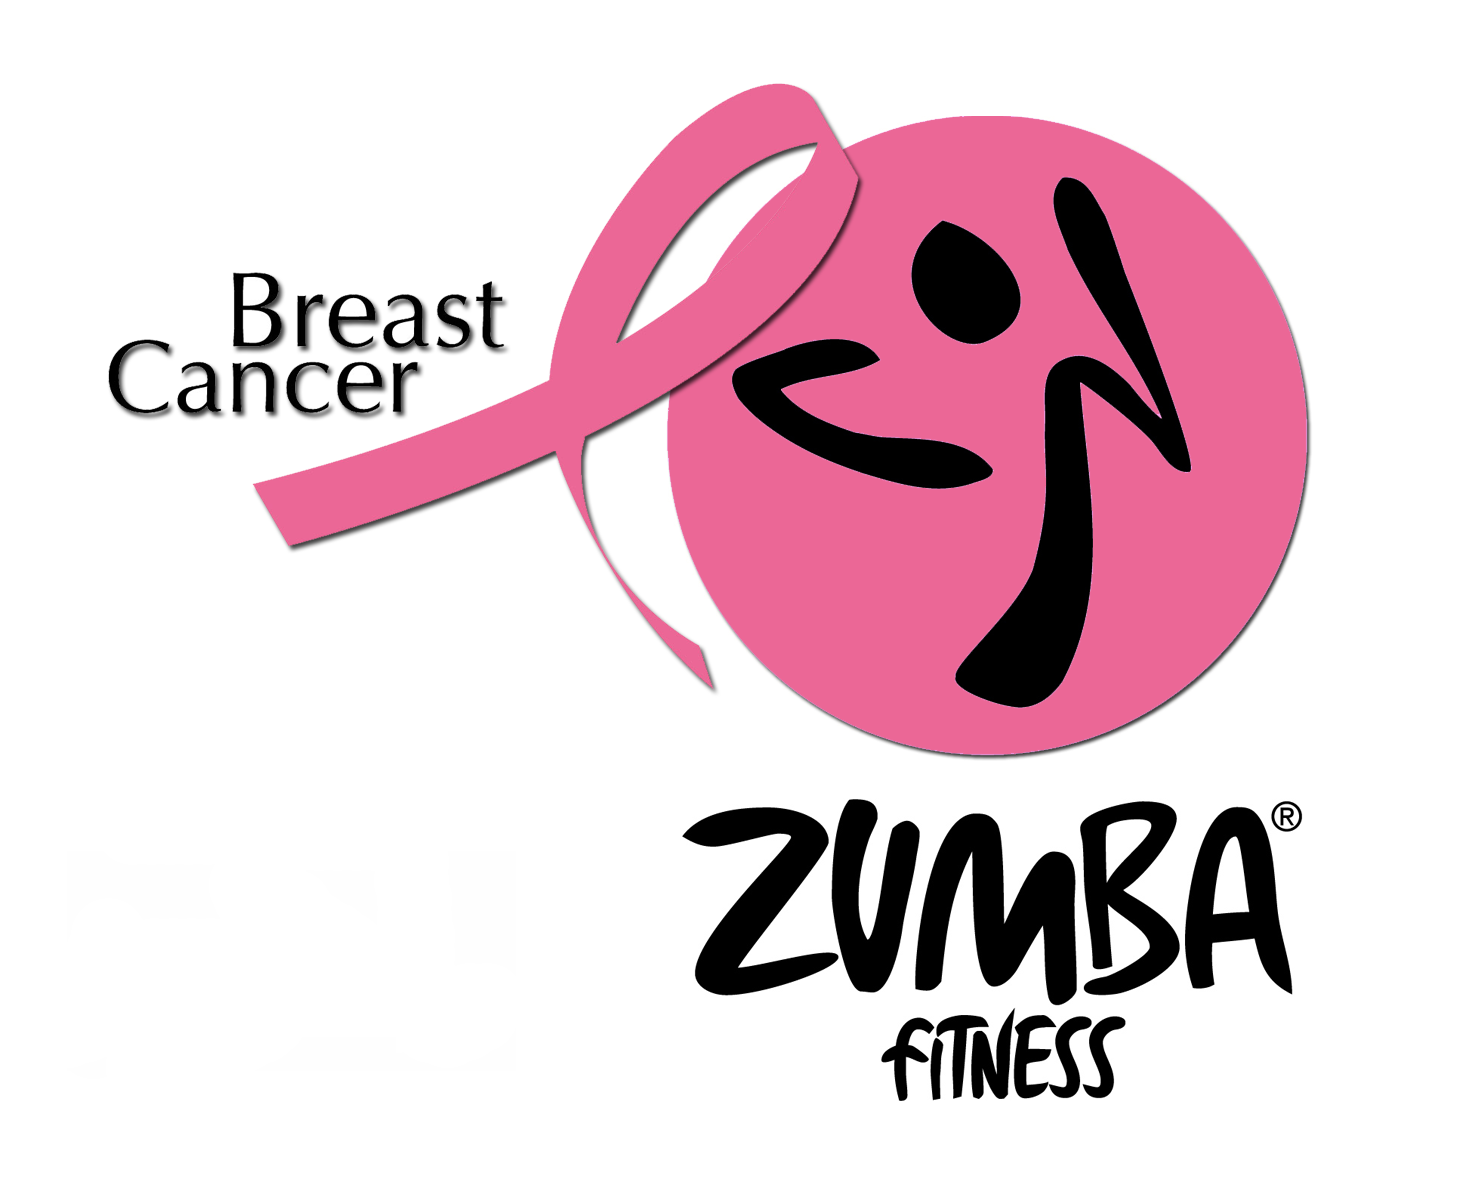 Beating Breast Cancer With Zumba Beating Breast Cancer With Zumba new foto